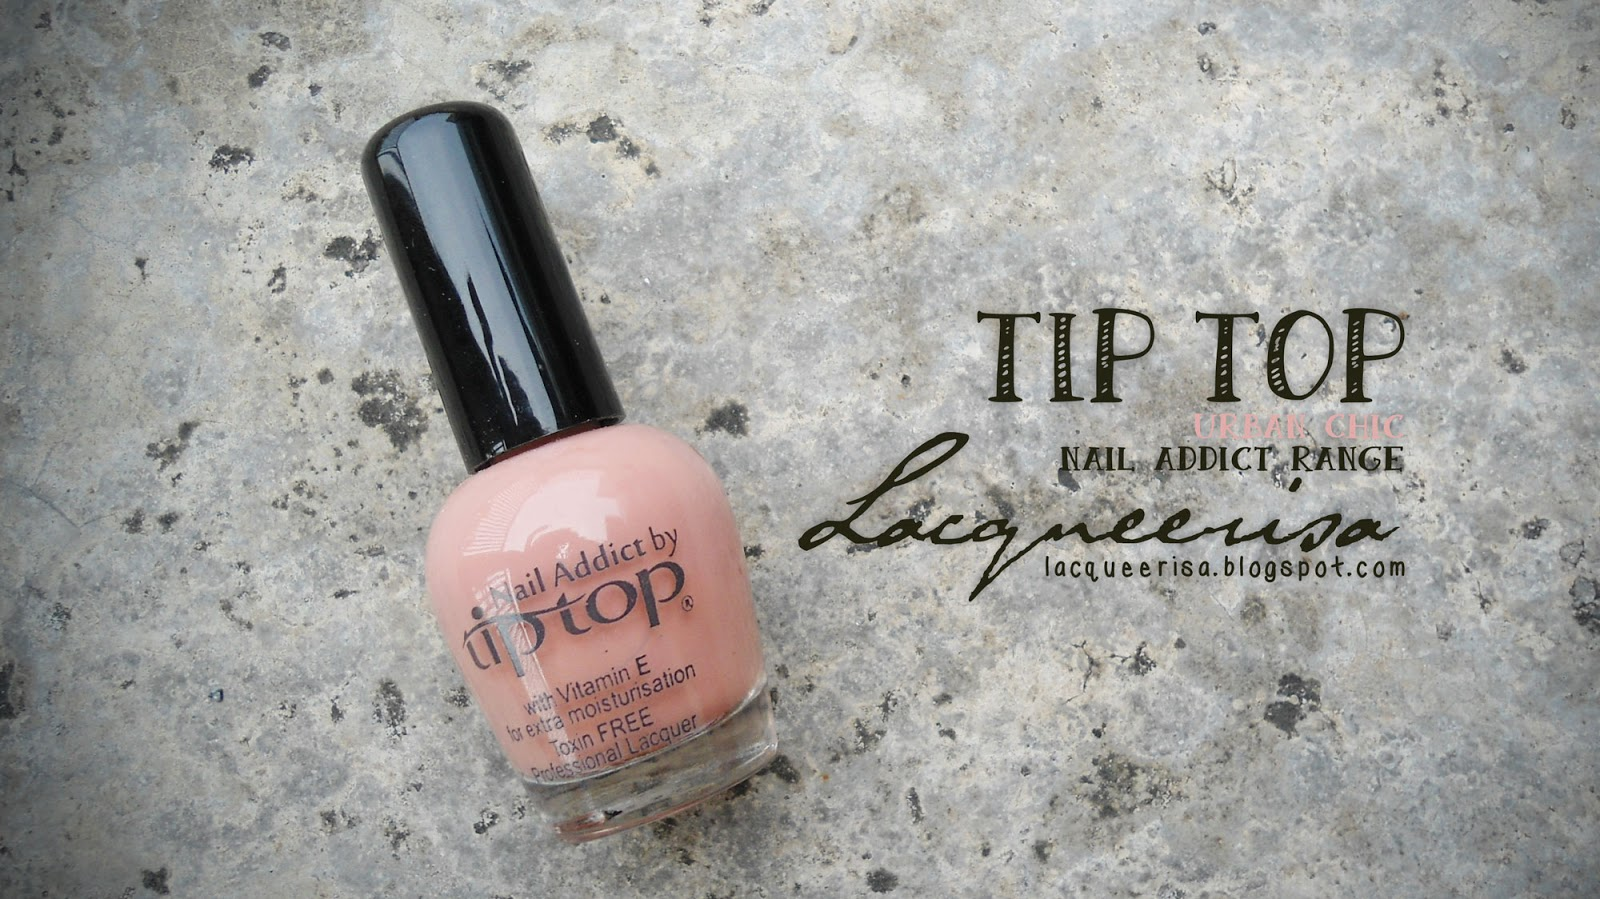 Lacqueerisa: Tip Top Nail Addict, Urban Chic